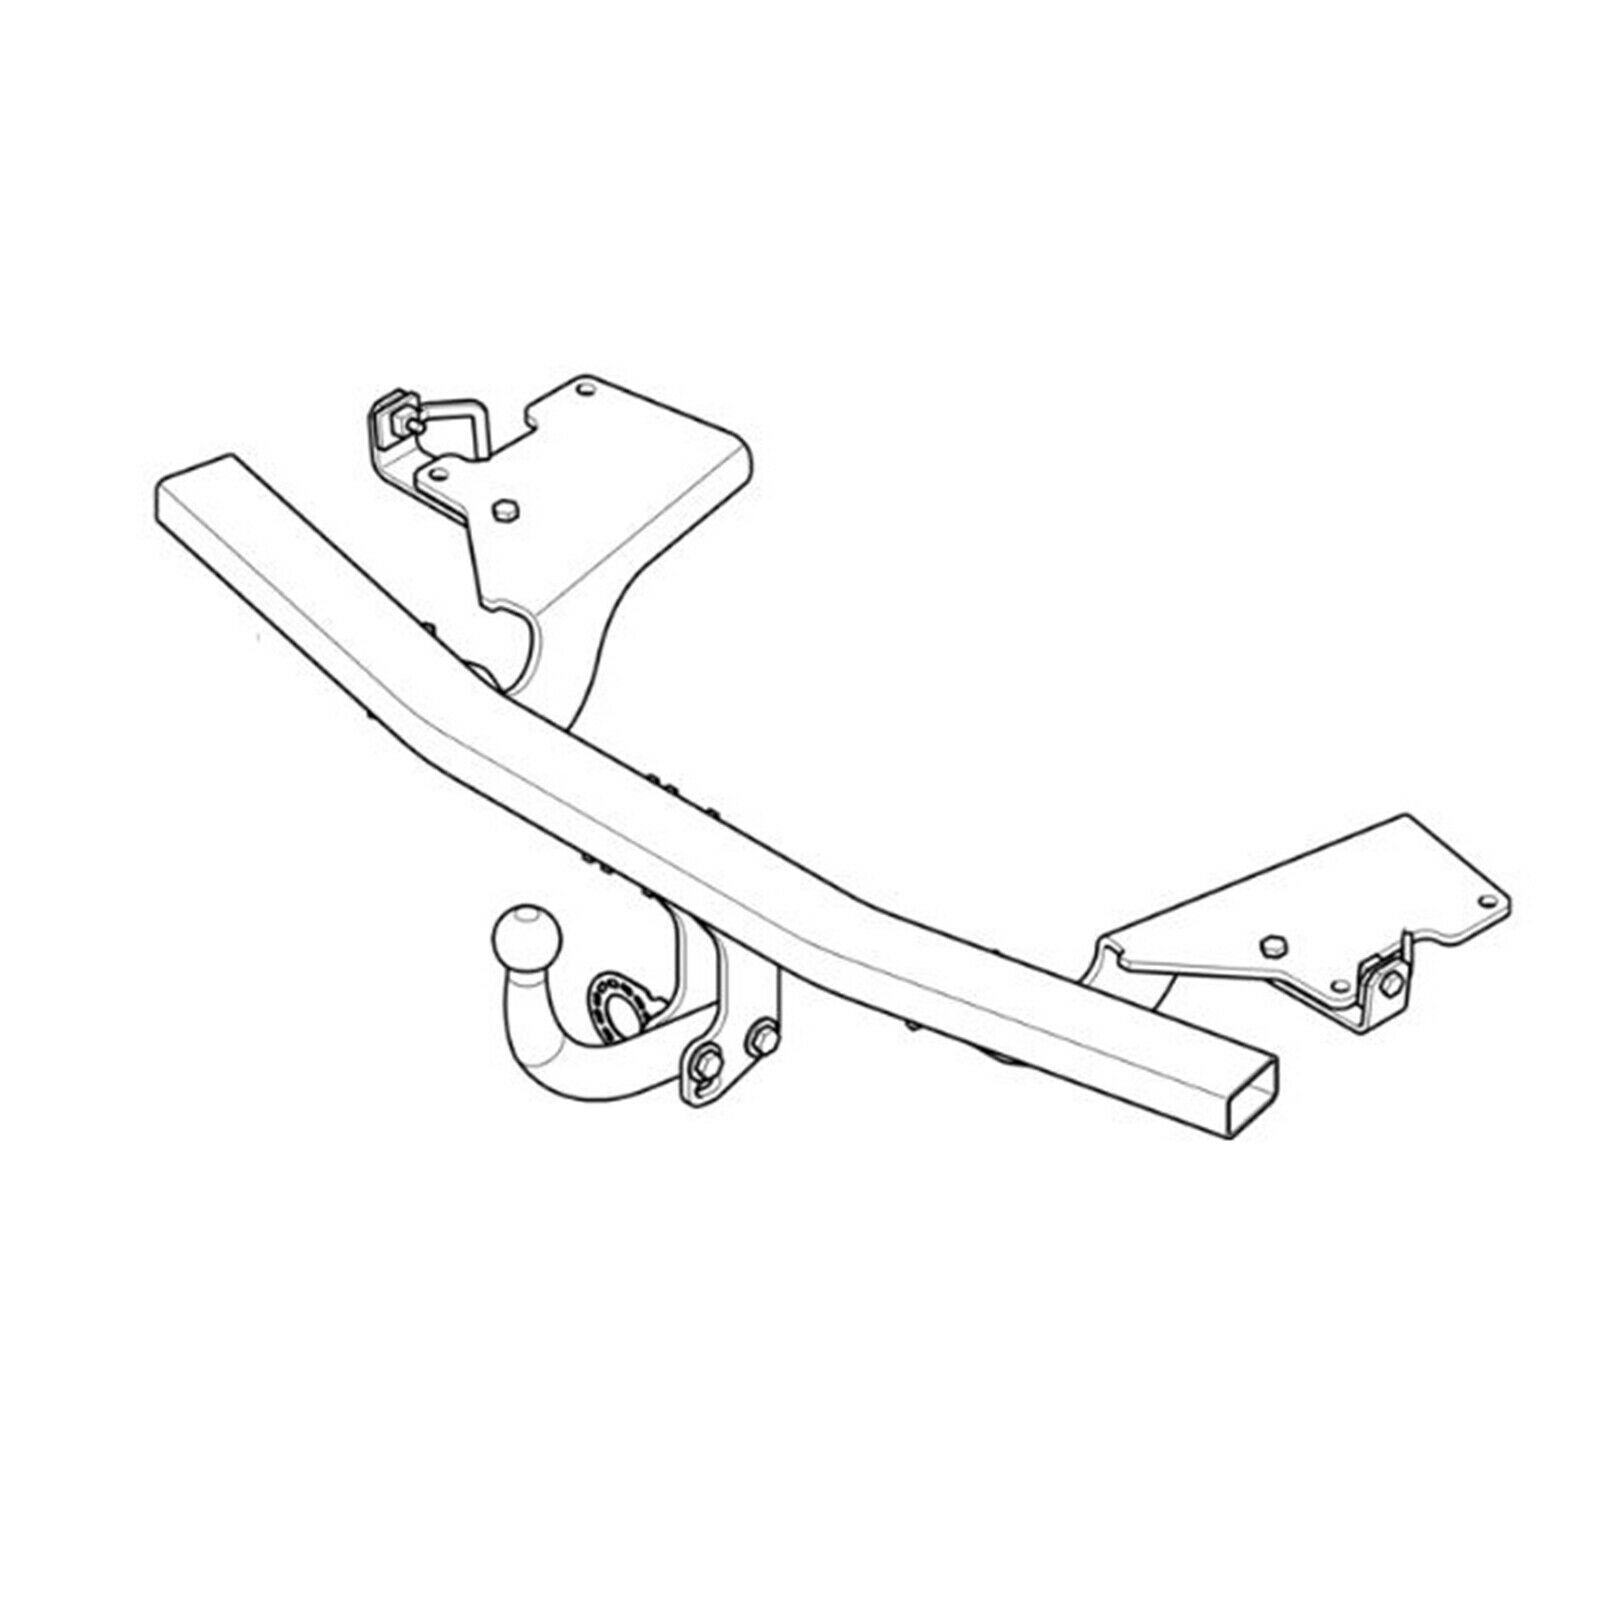 Westfalia Towbar for Skoda Octavia Estate Swan Neck Tow Bar Est 2005-2013